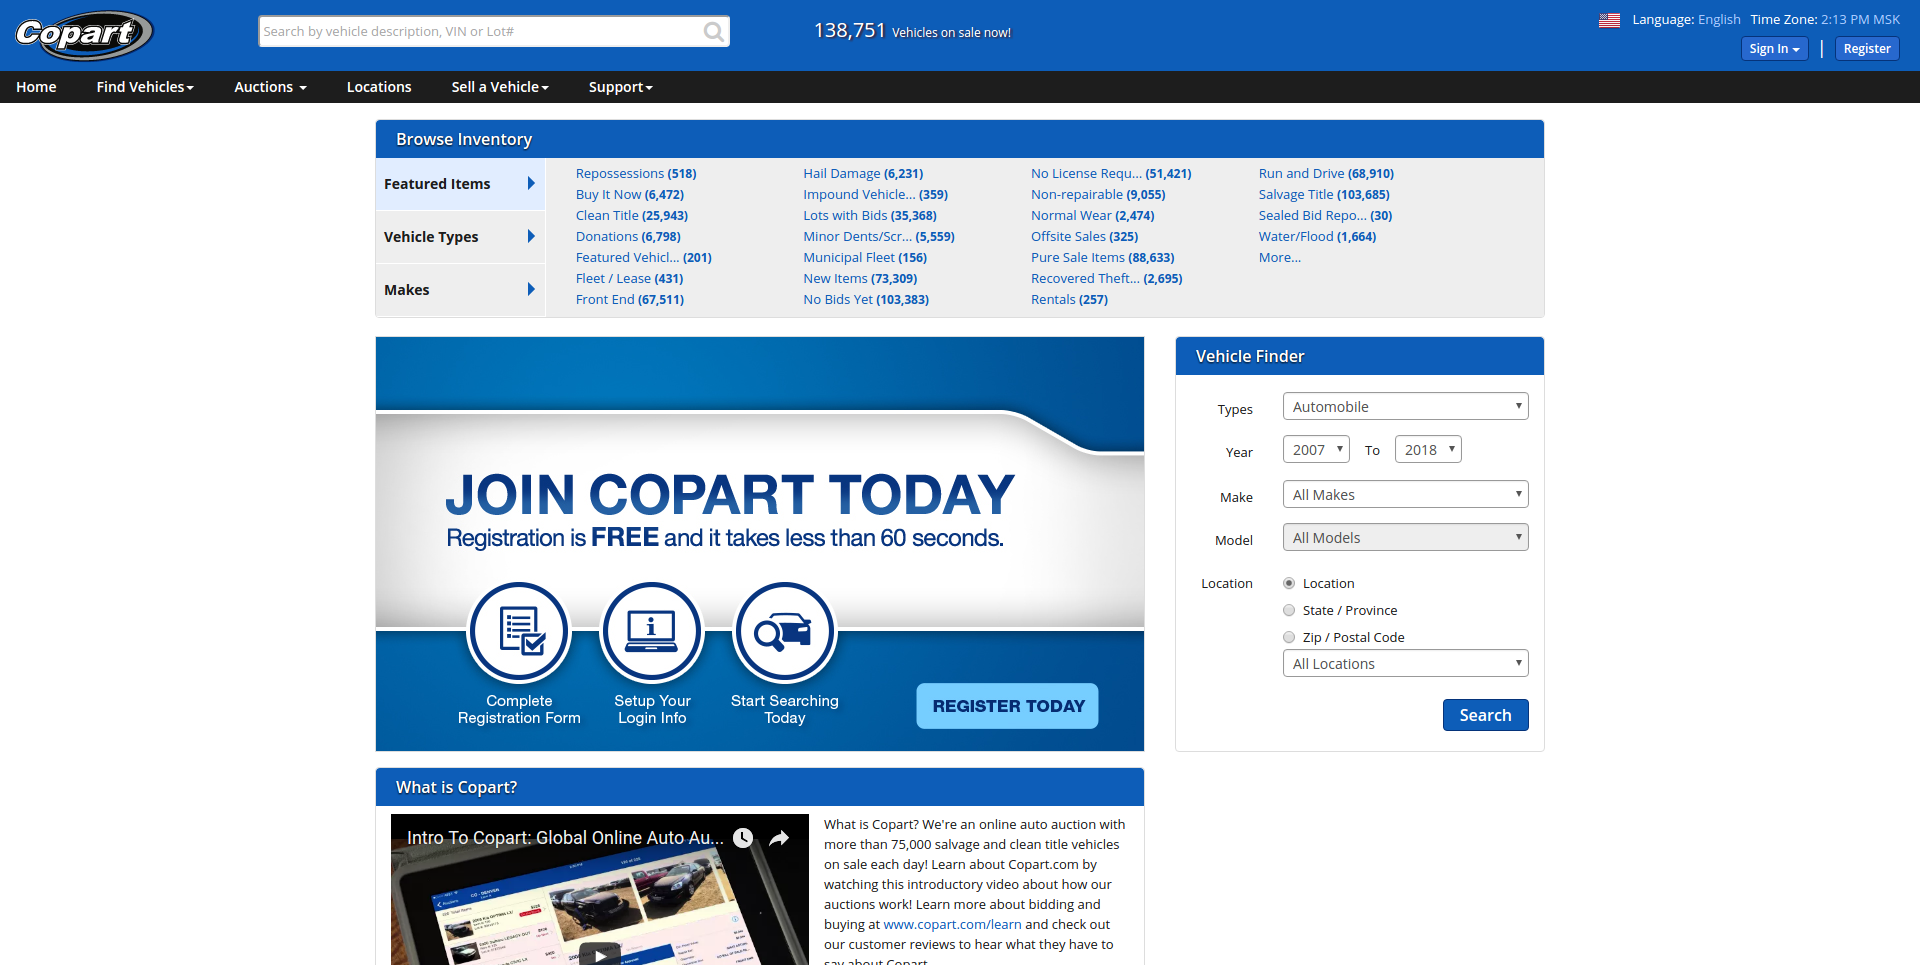 Copart company profile - Office locations, Competitors, Revenue,  Financials, Employees, Key People, Subsidiaries, News | Craft.co